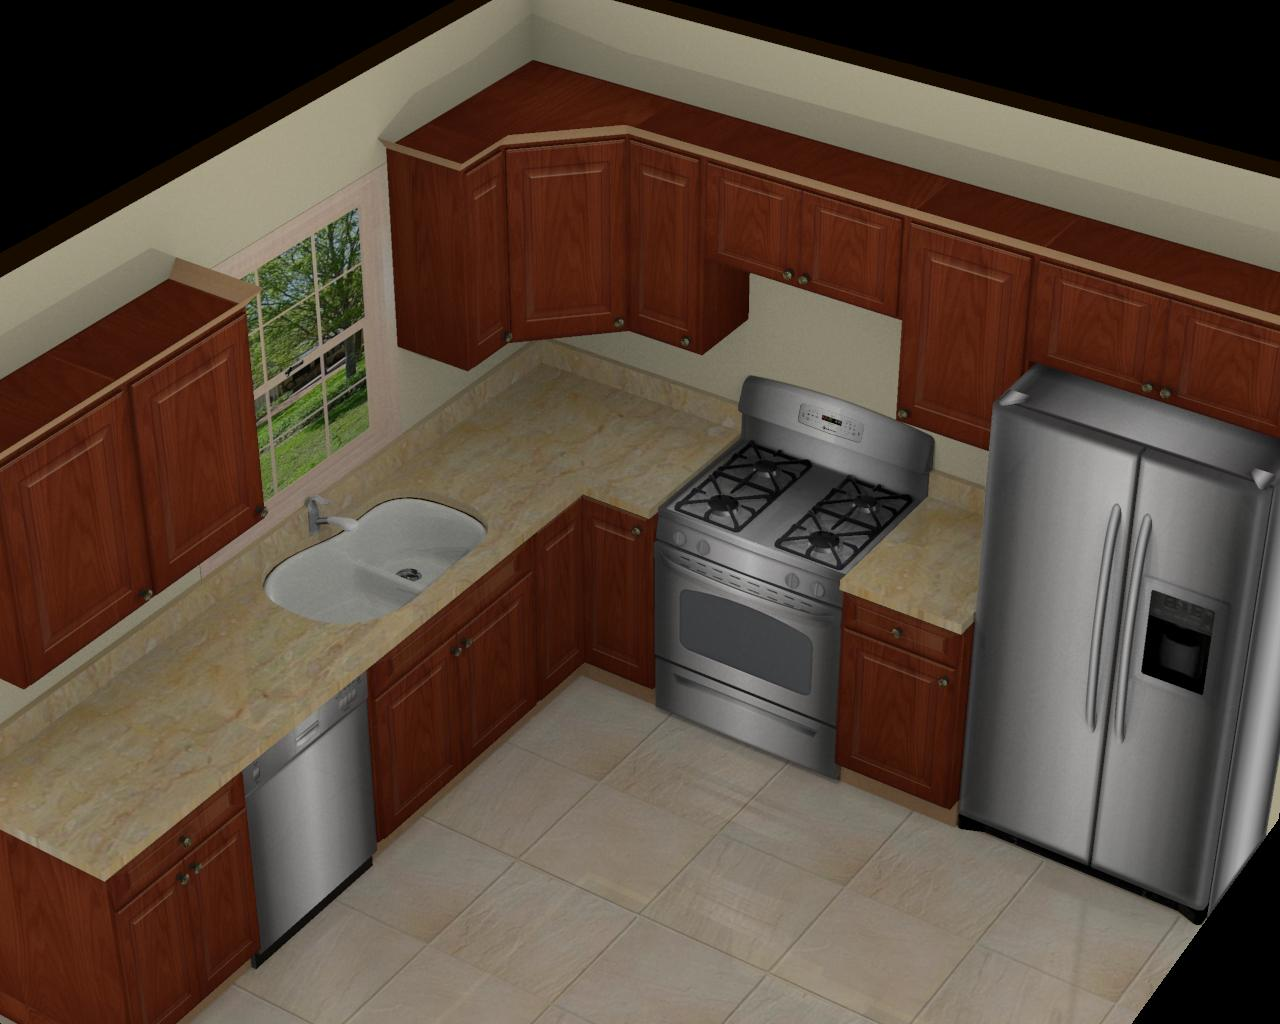 Pin 10x10 kitchen layout image search results on pinterest for 10x10 kitchen cabinets